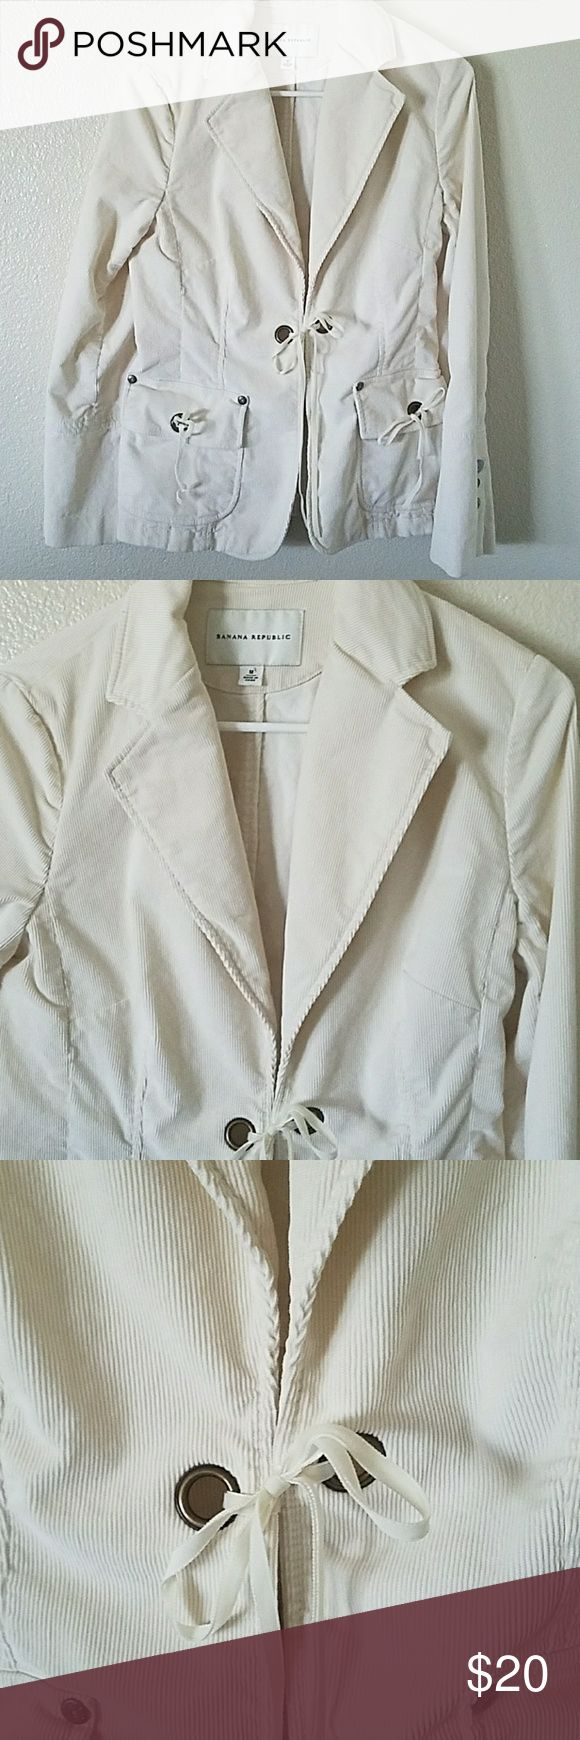 Banana Republic  blazer/jacket size M Banana Republic corduroy blazer/jacket in bone color size medium. Excellent condition, metal buttons on sleeves and grommets. Banana Republic Jackets & Coats